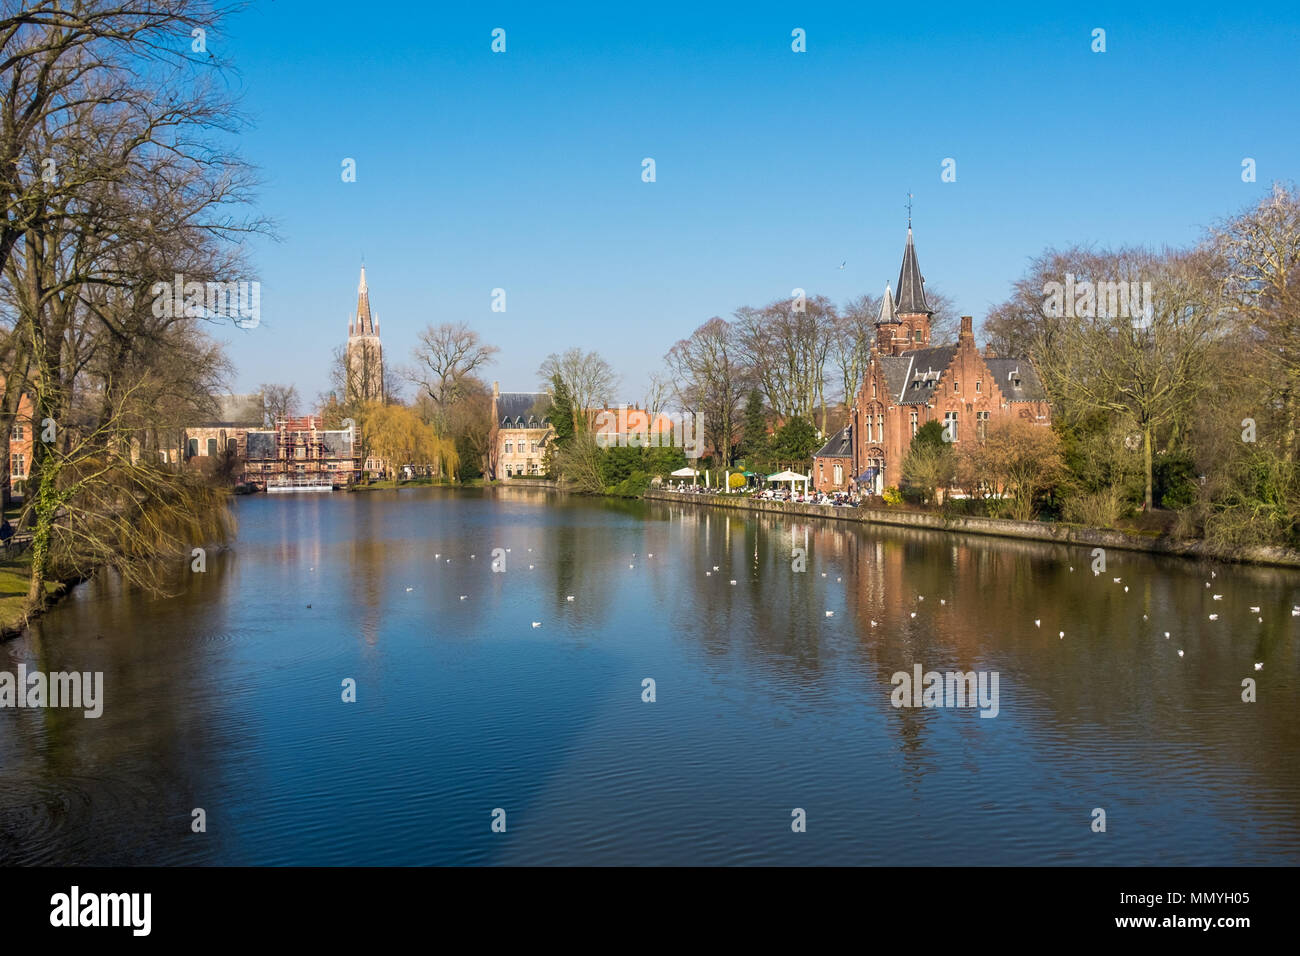 View on the so-called Lake of Love (Minnewater) in the center of Bruges Stock Photo